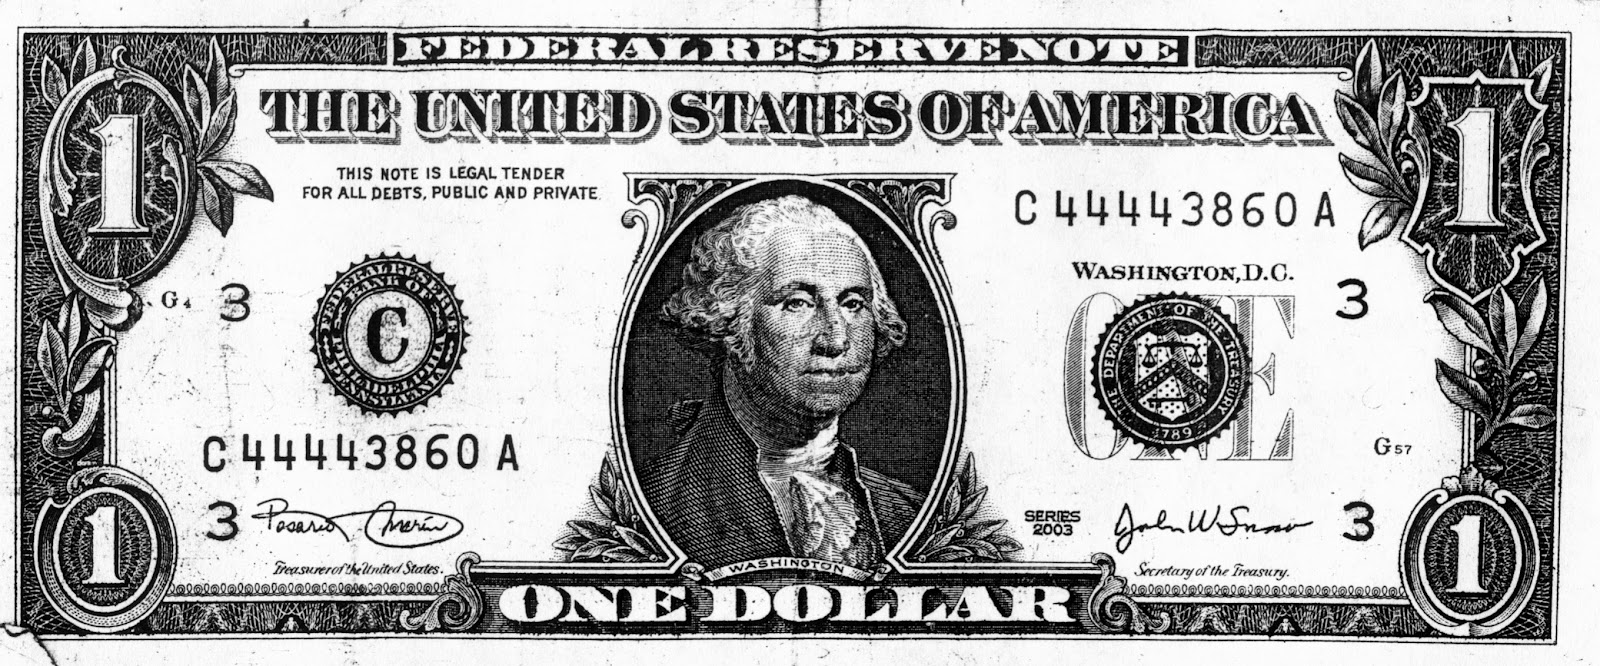 One dollar bill clipart black and white clip art black and white 10 Black And White Photos Of 20 Dollars Images - One Dollar ... clip art black and white